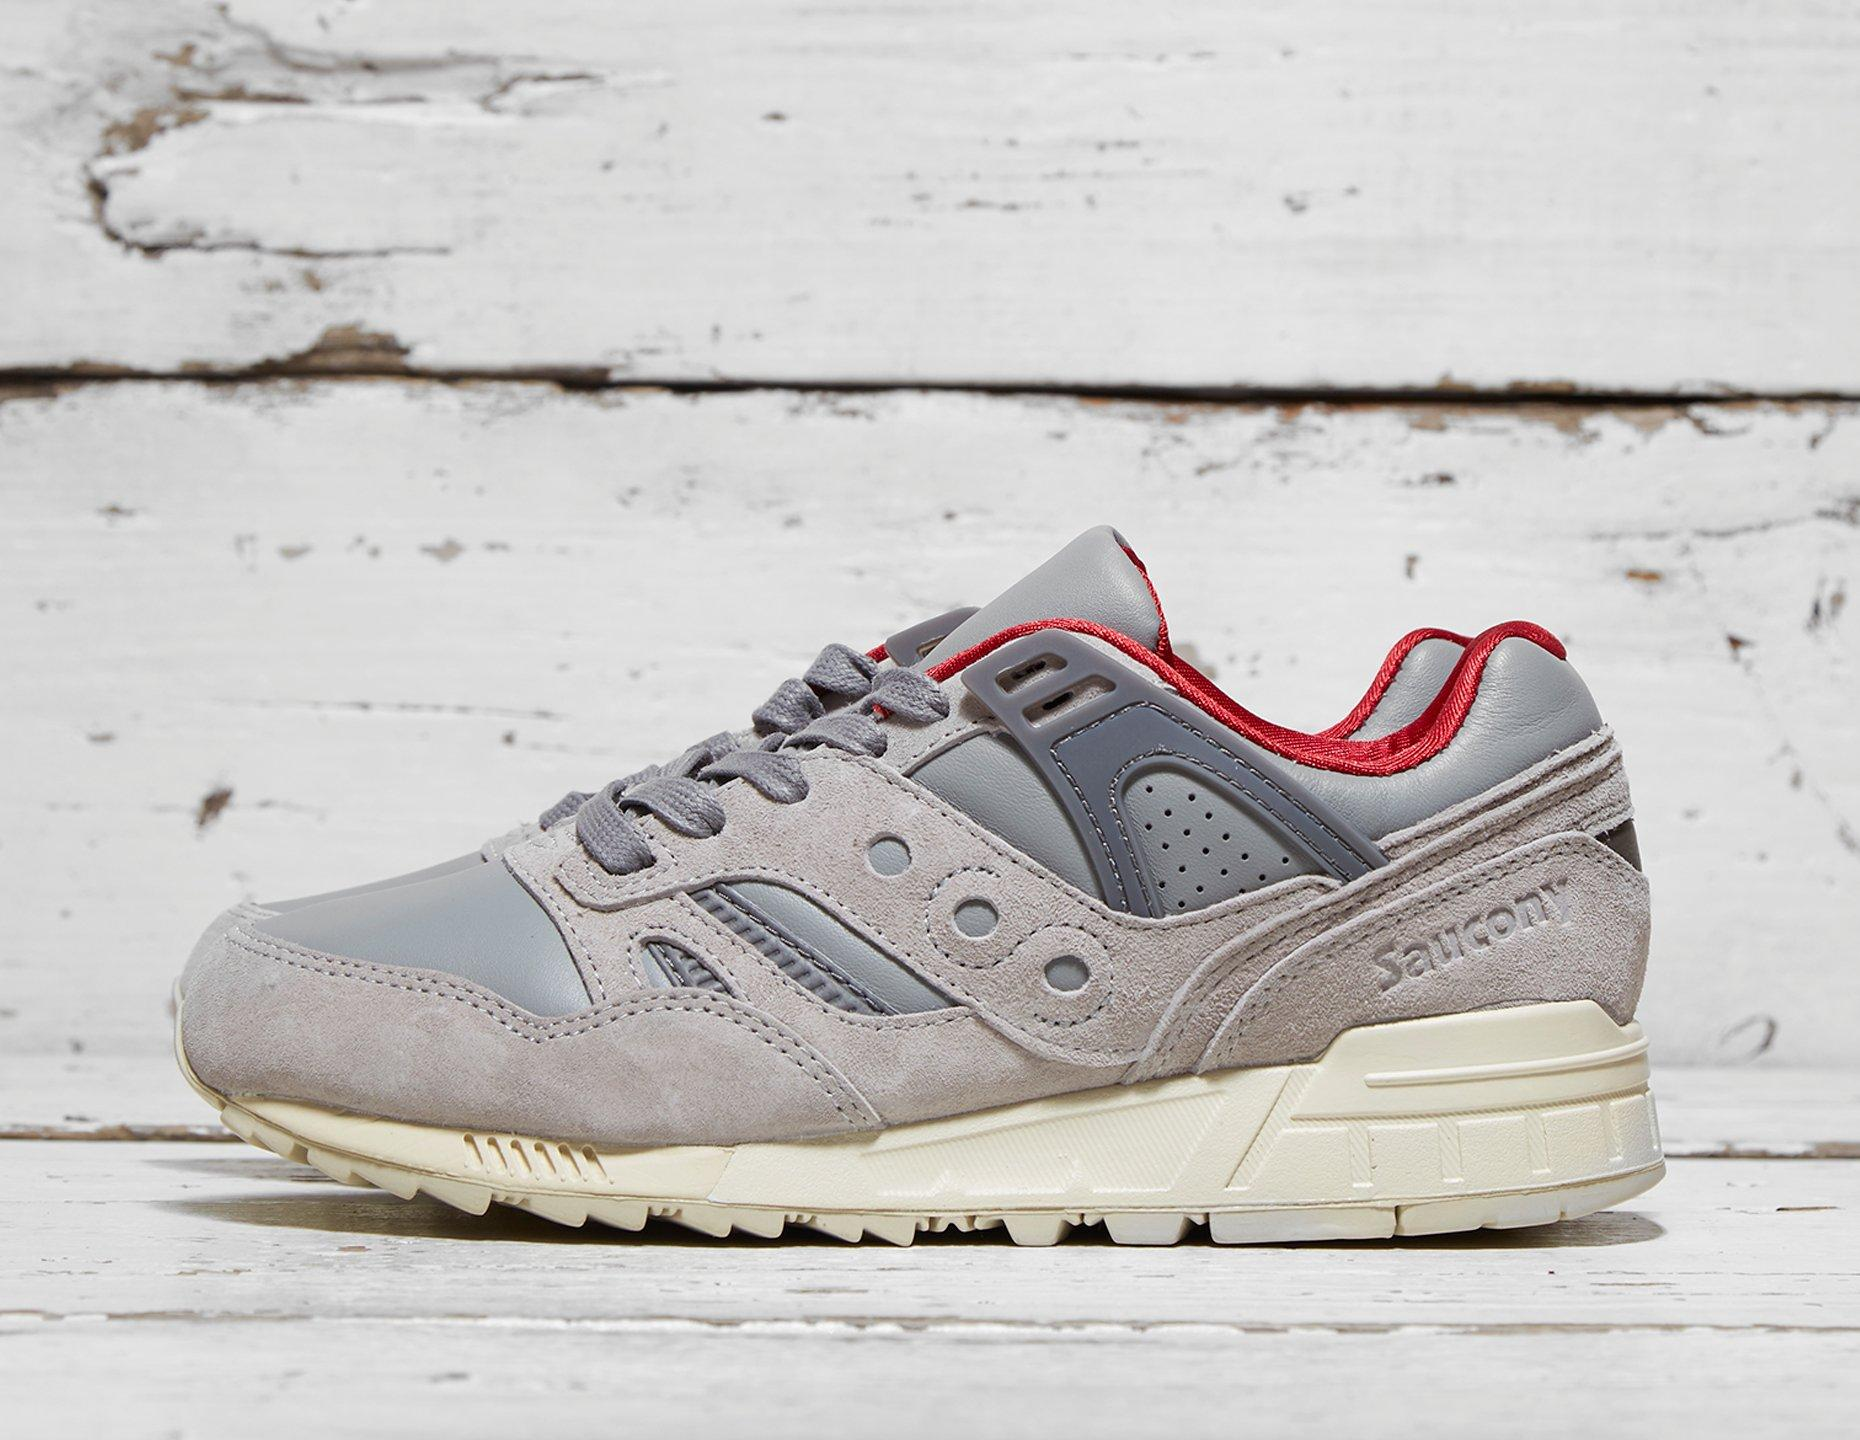 Mens <strong>Saucony</strong> Grid SD 'Public Gardens' - Grey/Red, Grey/Red - photo 1/1